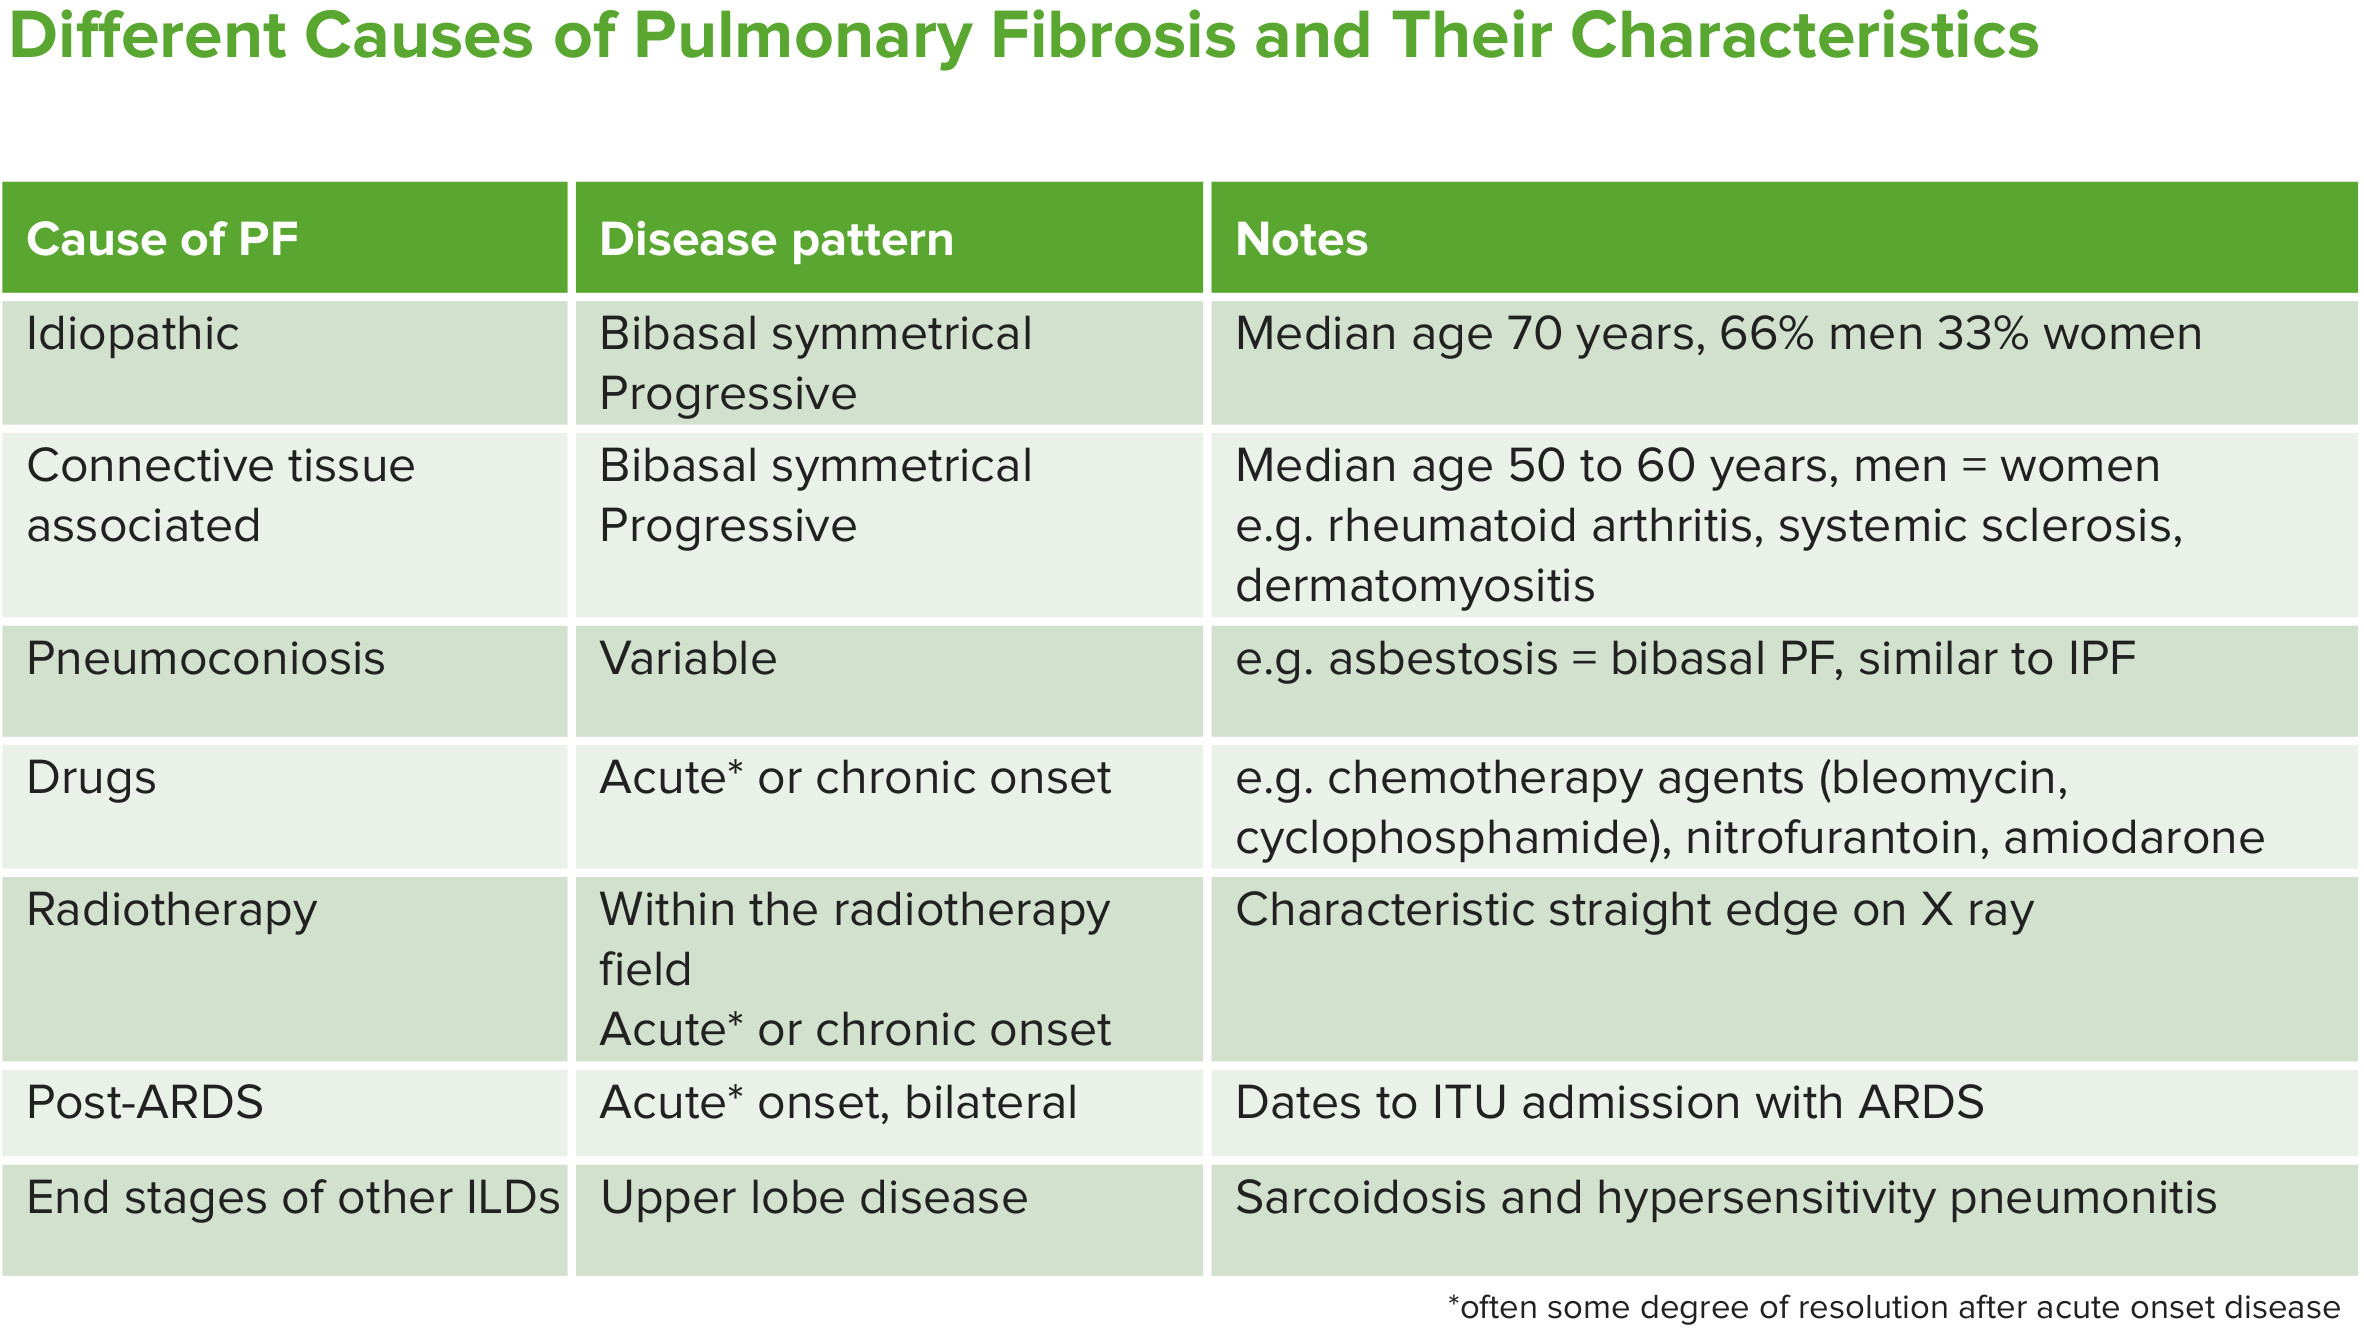 different causes of pulmonary fibrosis and their characteristics